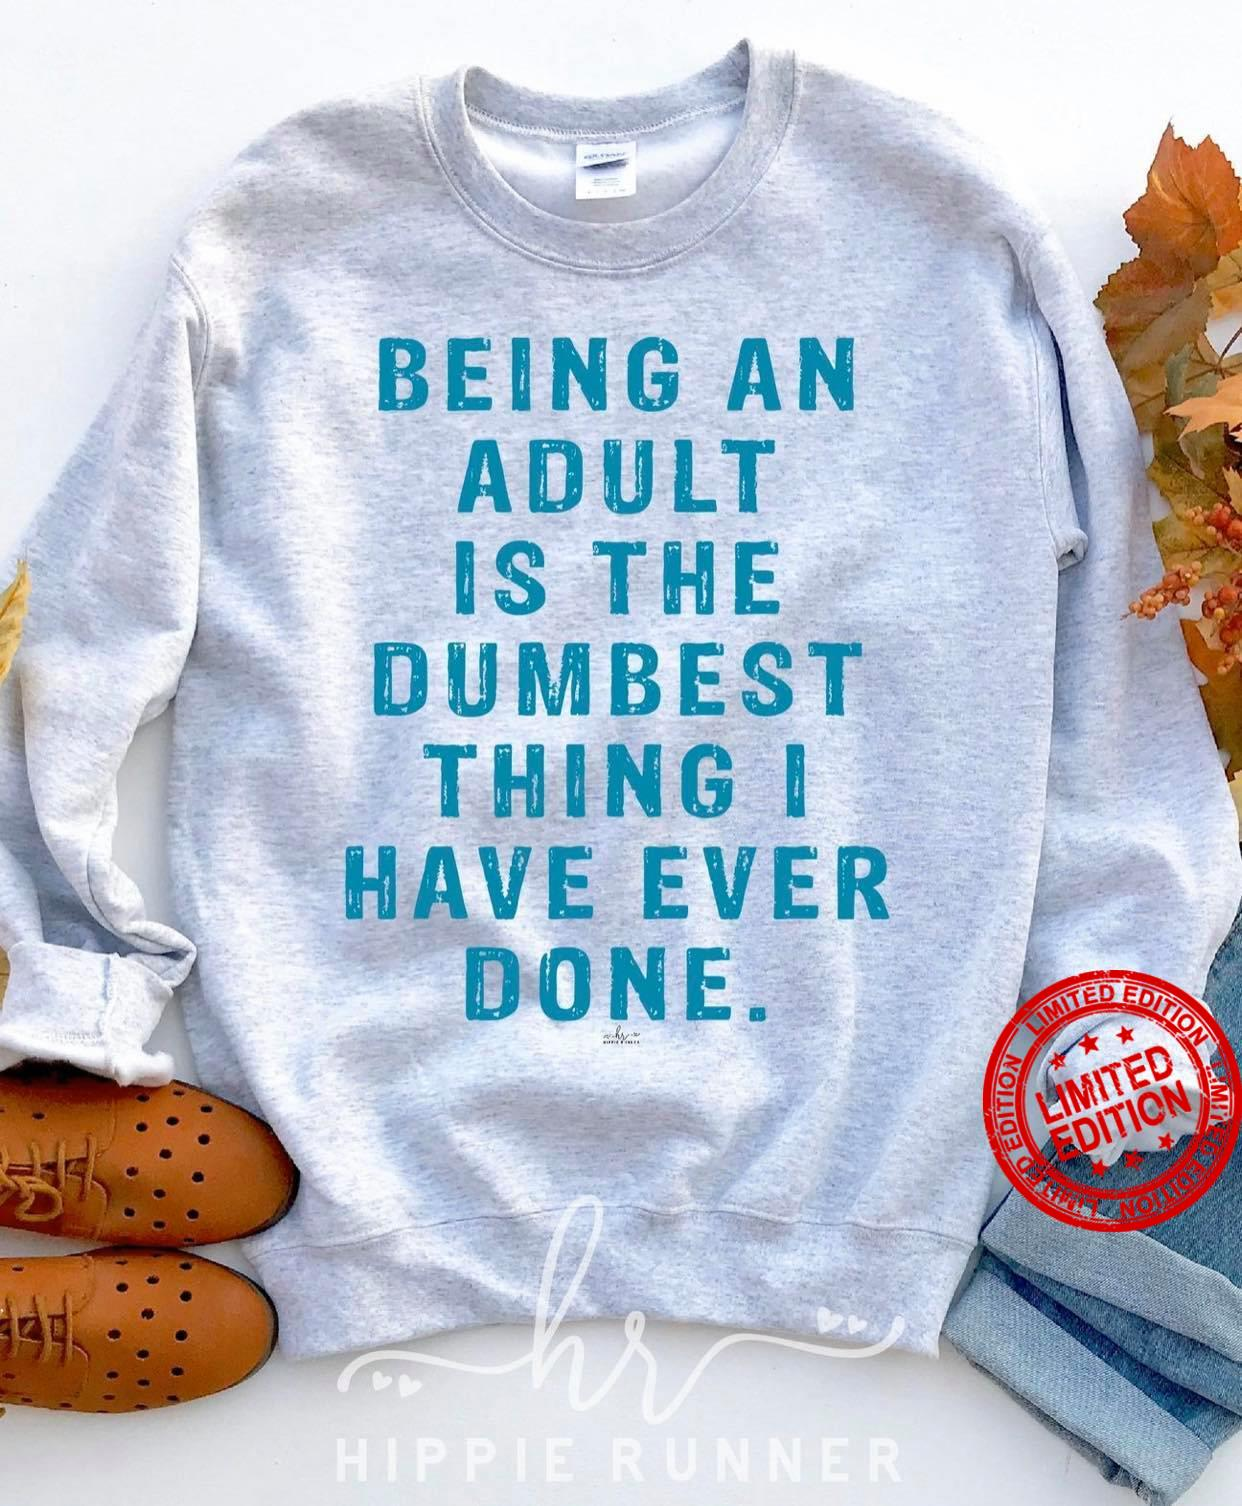 Being An Adult Is The Dumbest Thing Is Have Ever Done Shirt